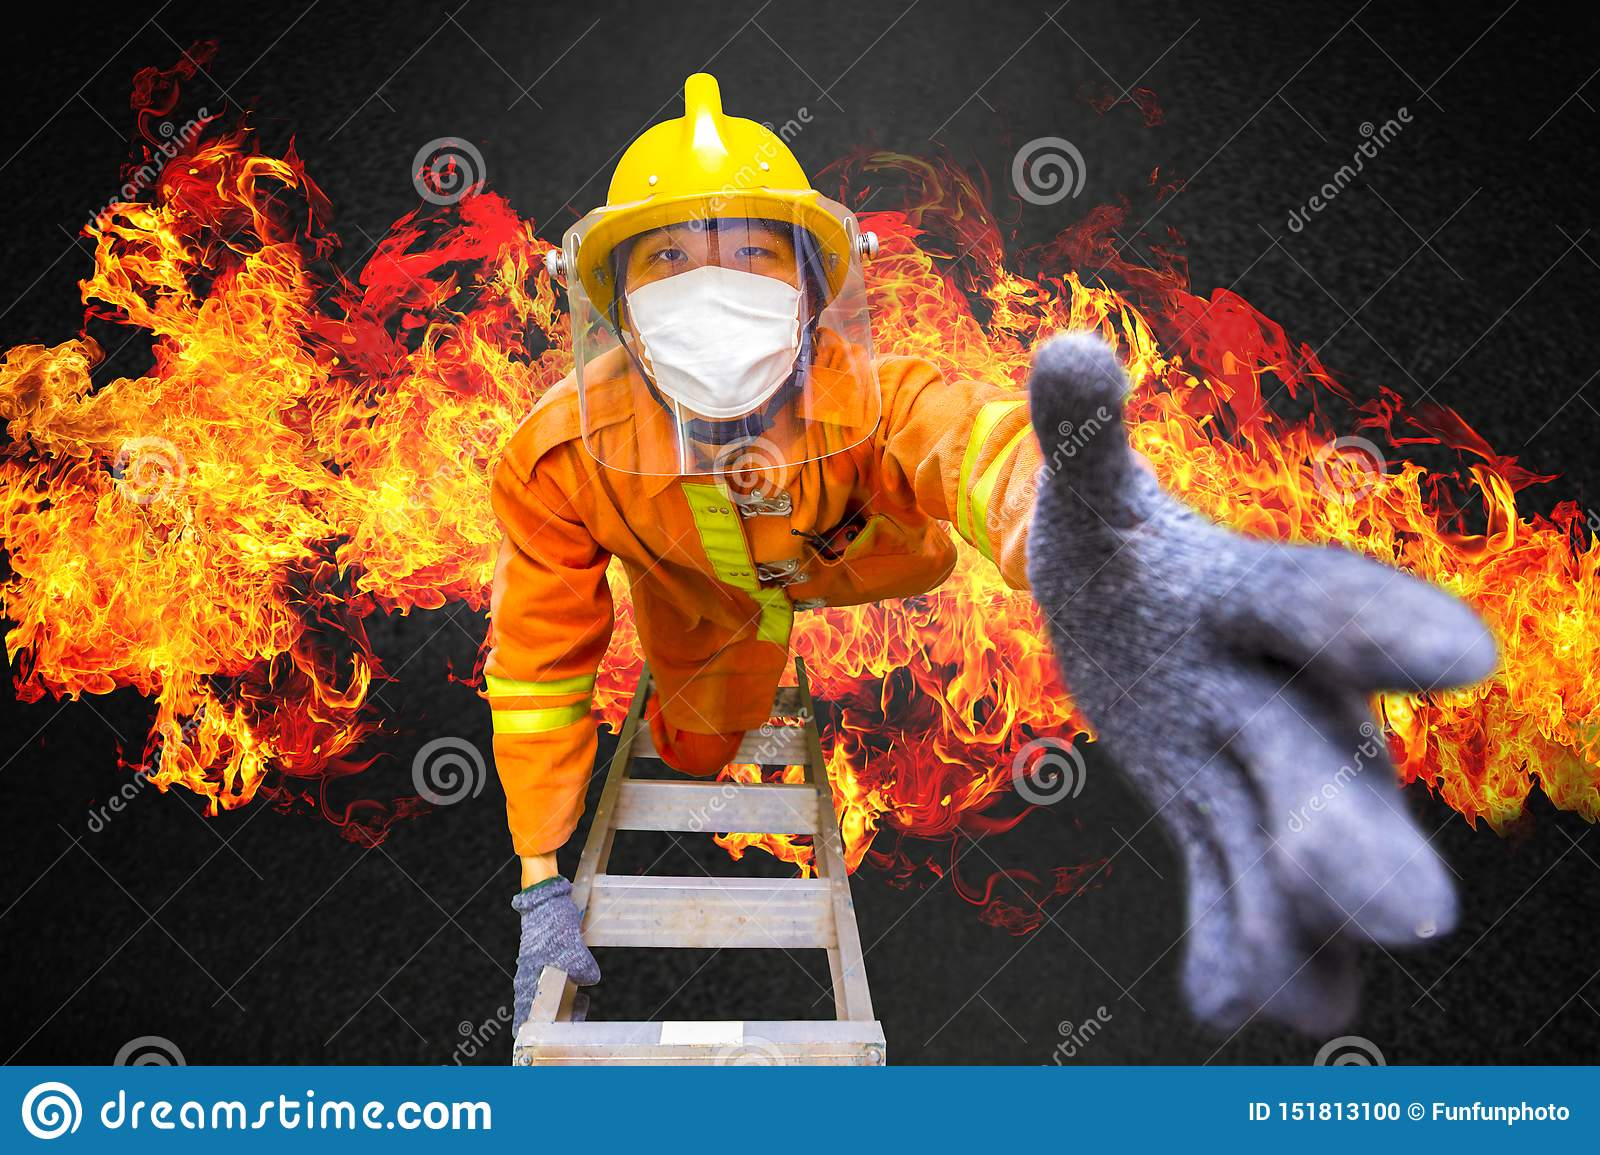 Firefighter rescue, fireman climbing on fire stairs or turntable ladder from burning building to save people in fire and smoke